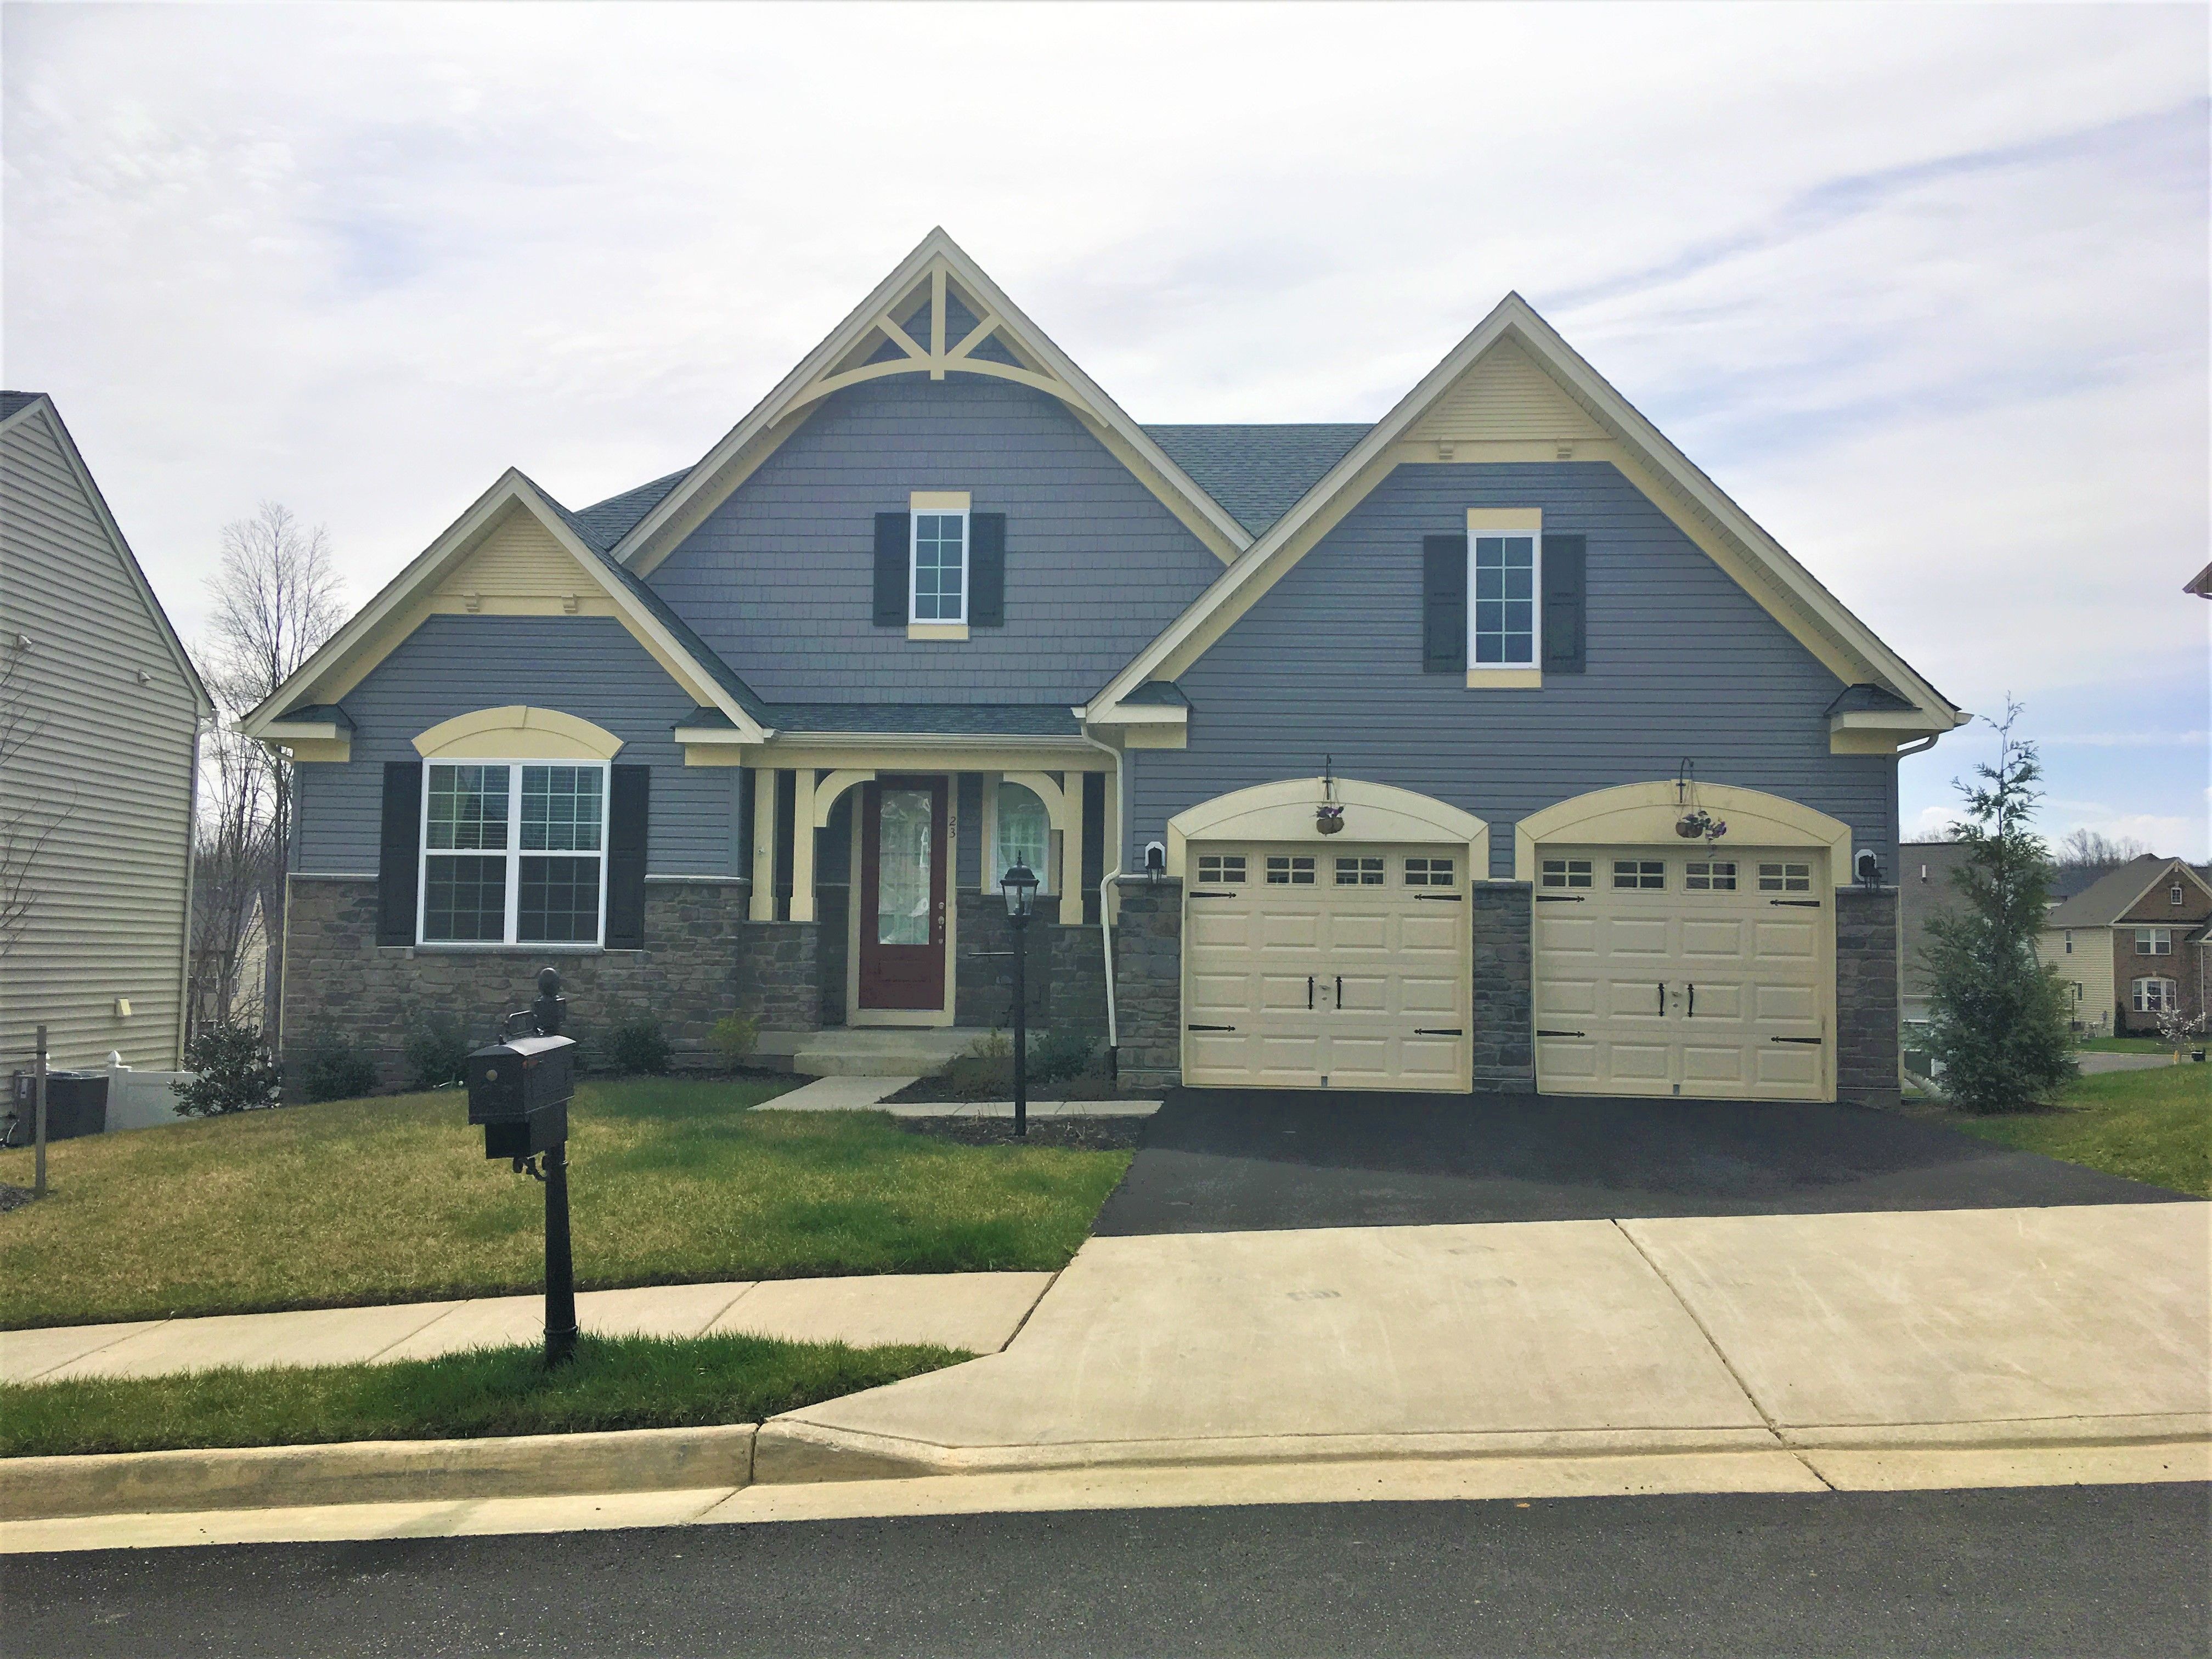 Photo of 23 Tankard Road, Stafford, VA, 22554